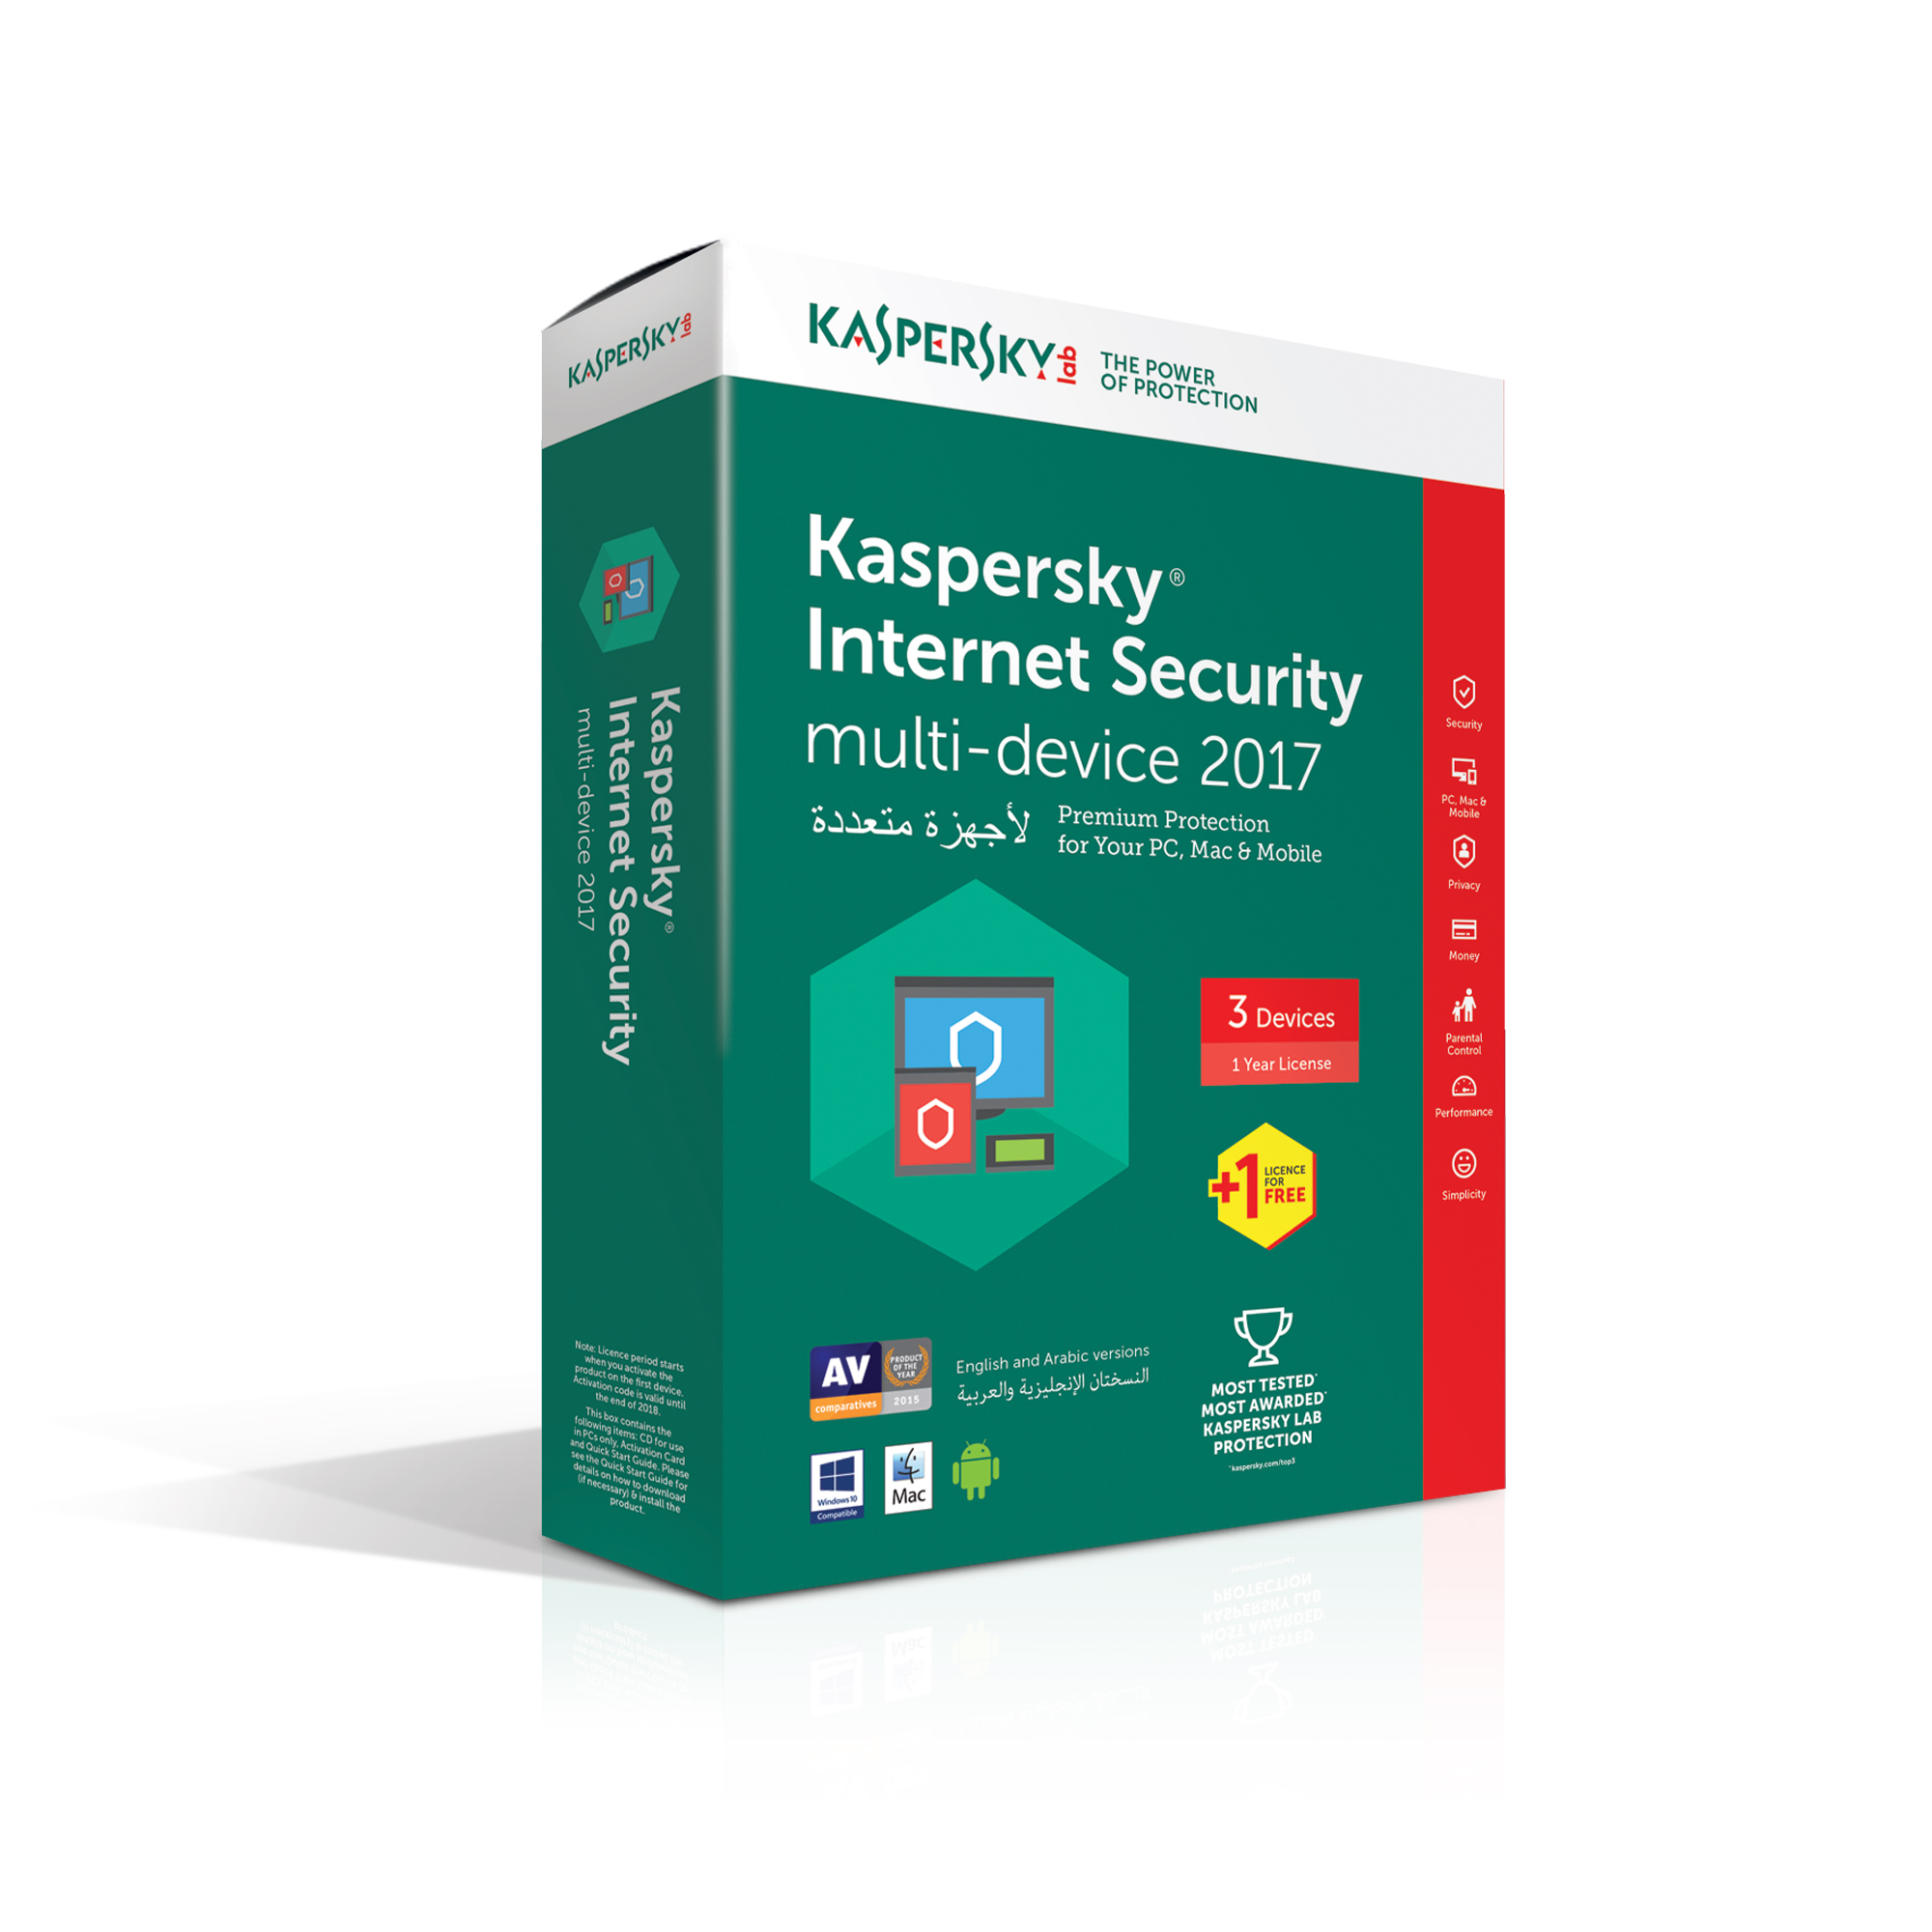 KASPERSKY SOFTWARE / INTERNET SECURITY MD 2017 3+1 USER (KIS4PCRT2017)